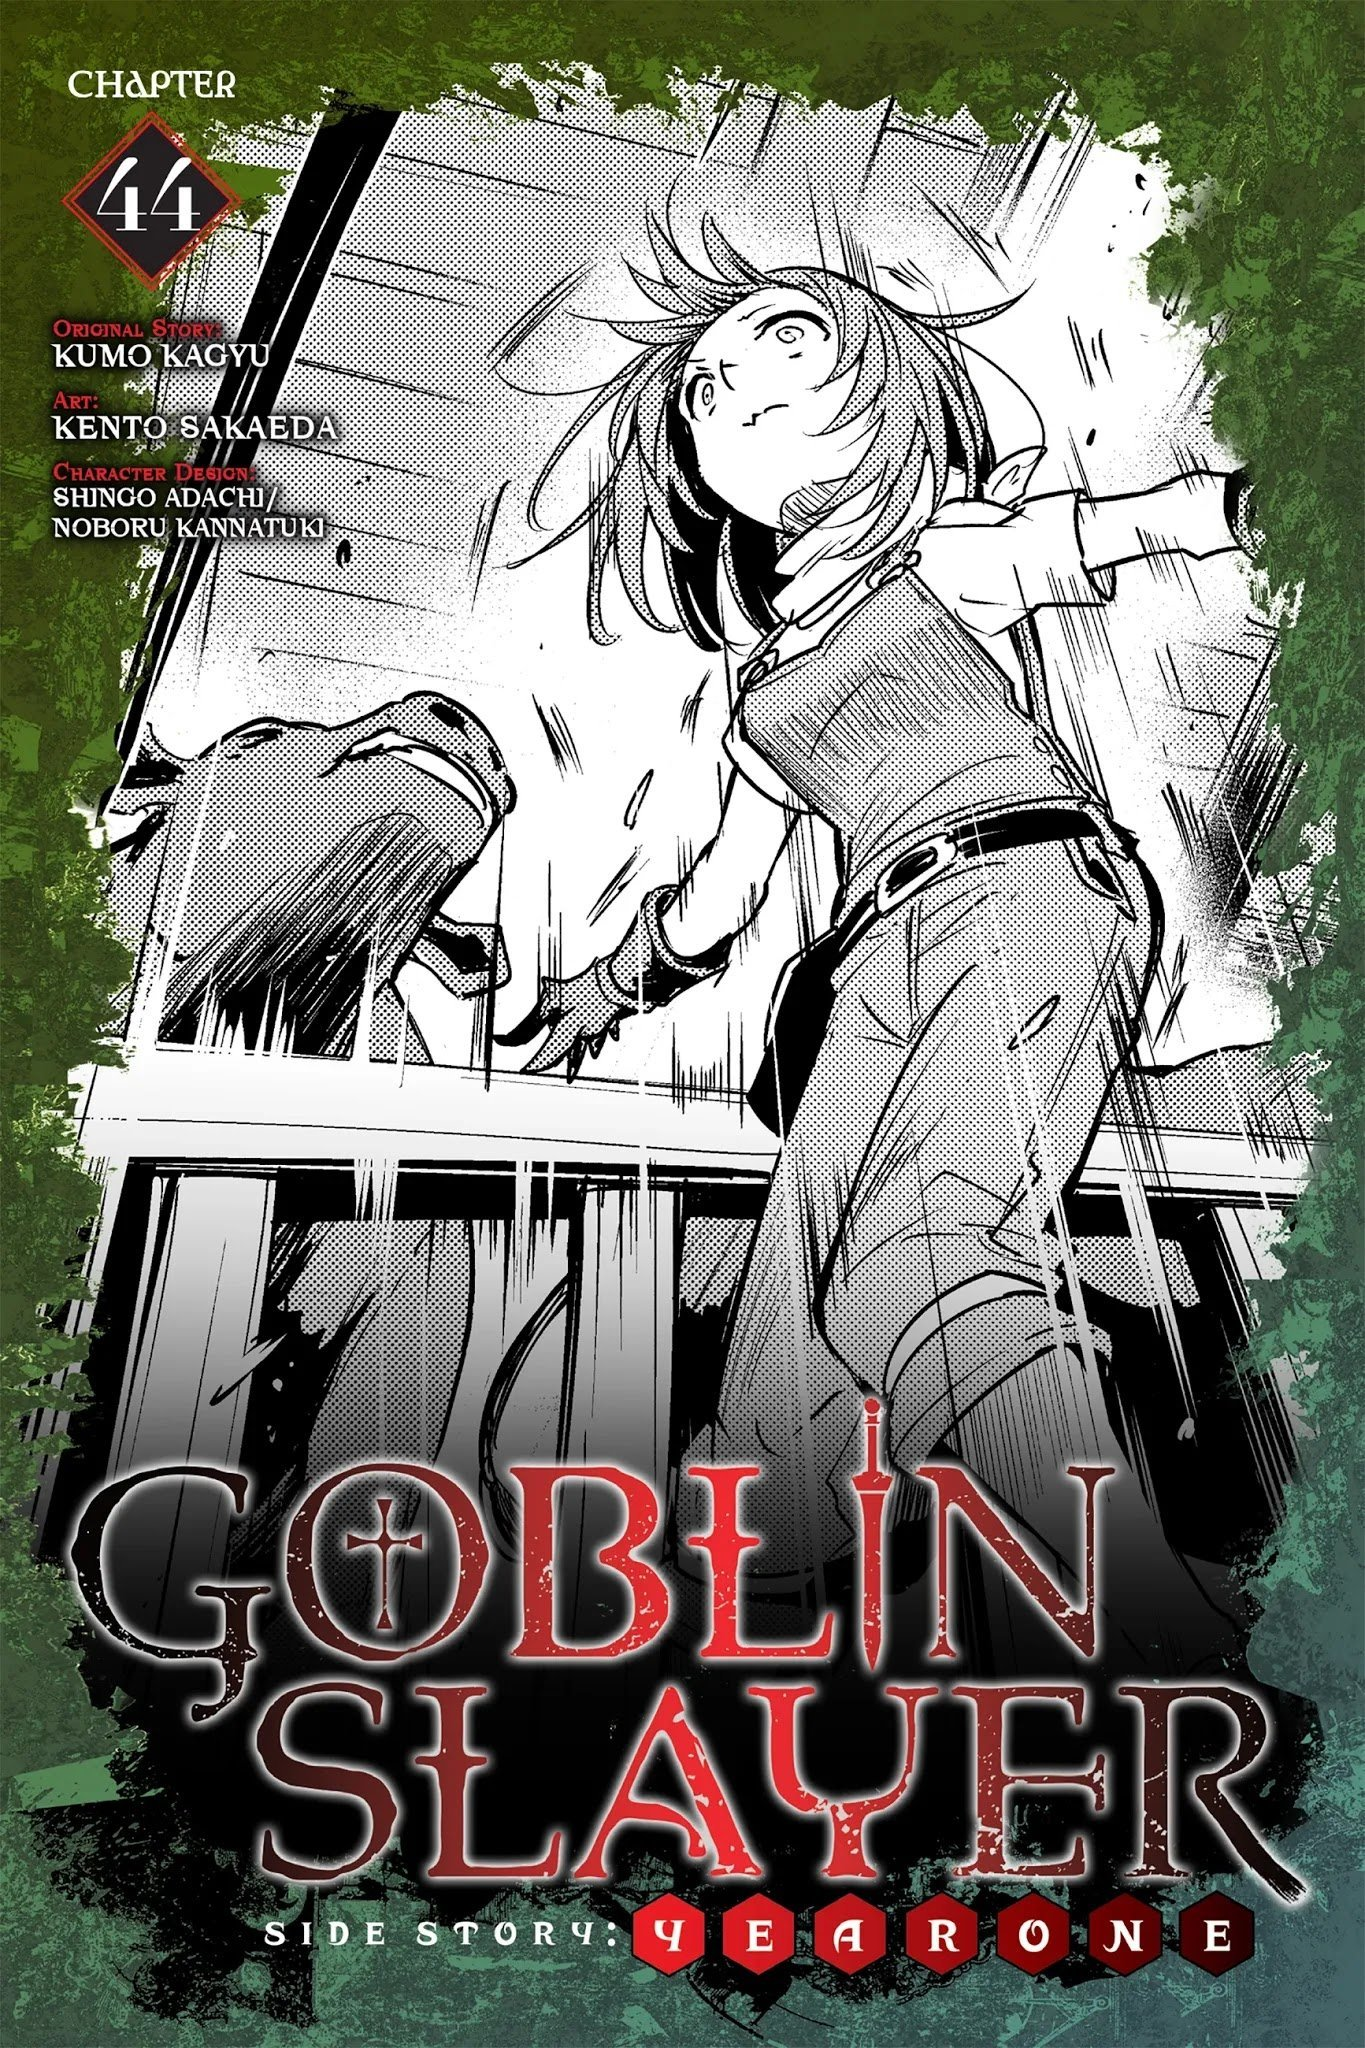 Manga Goblin Slayer Side Story: Year One - Chapter 44 Page 1